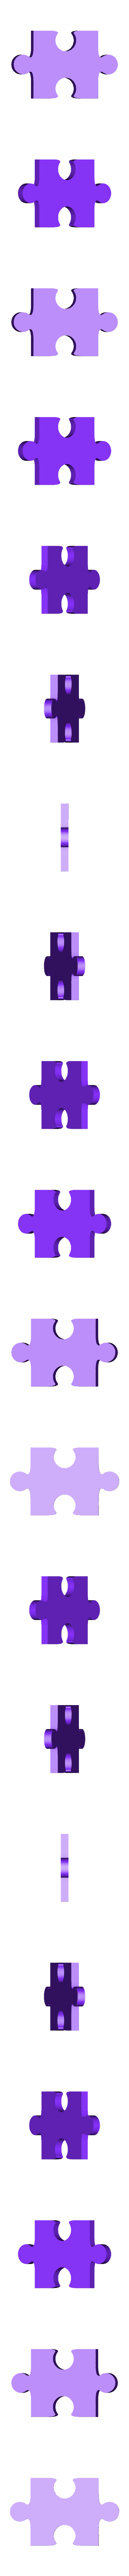 6.stl Download free STL file Autism Awareness Month Puzzle 2019 • Model to 3D print, Dsk